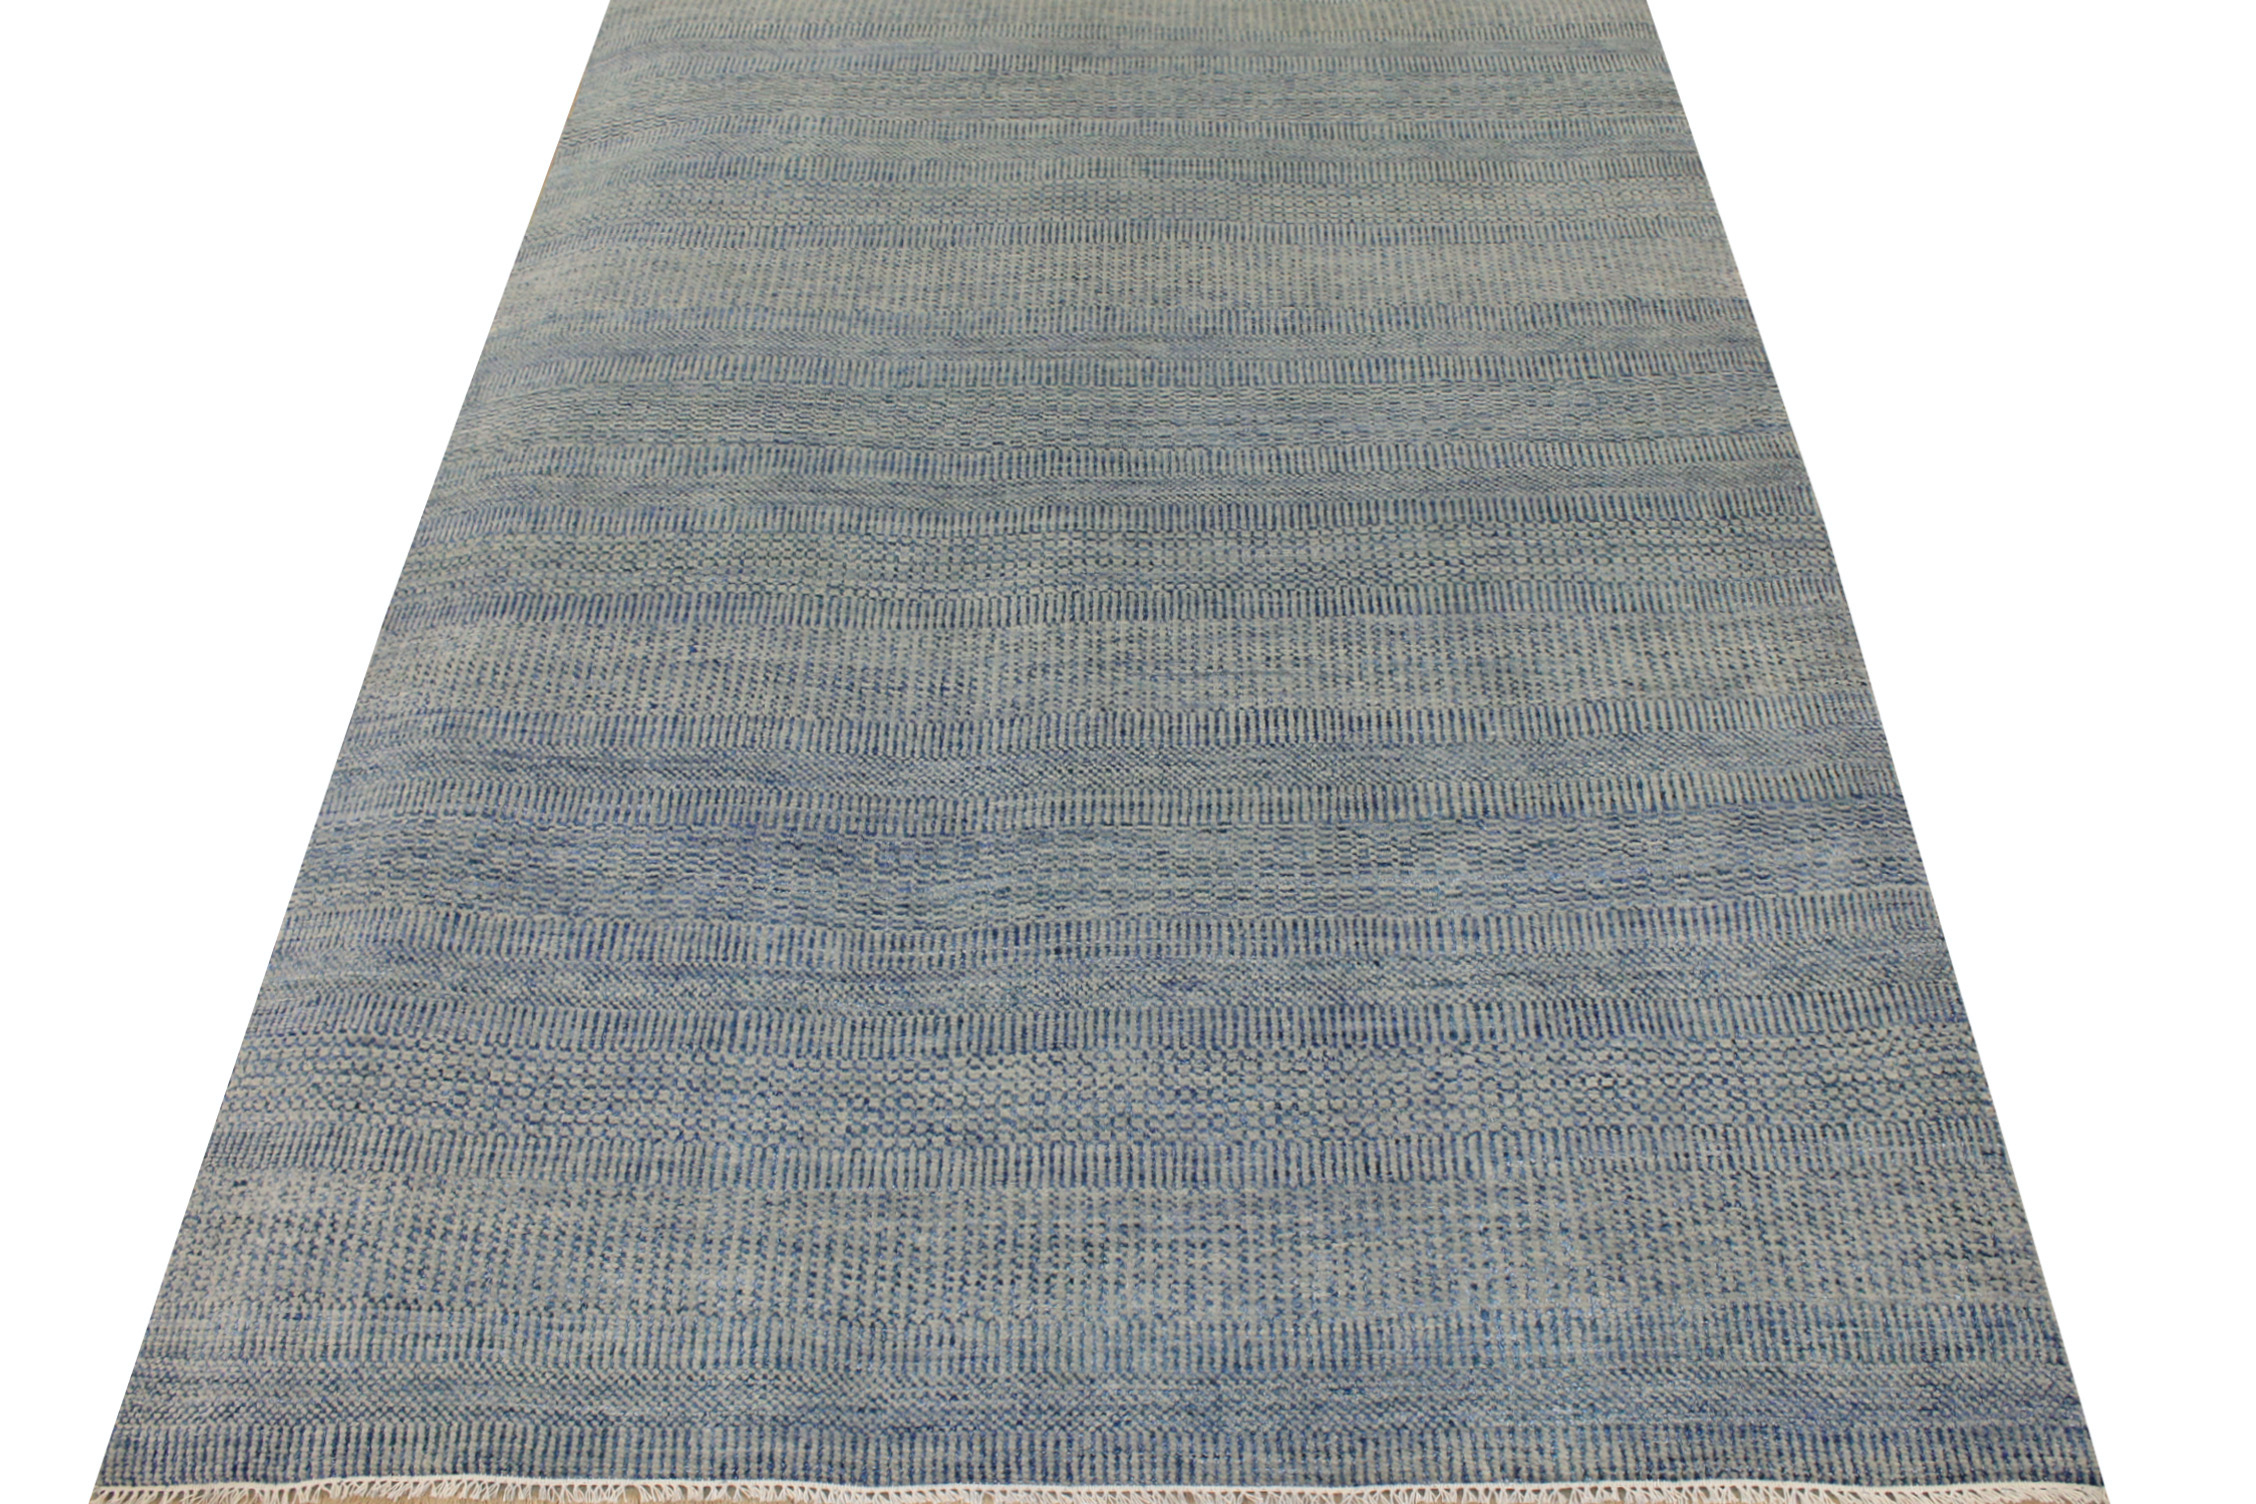 6x9 Contemporary Hand Knotted Wool Area Rug - MR021840